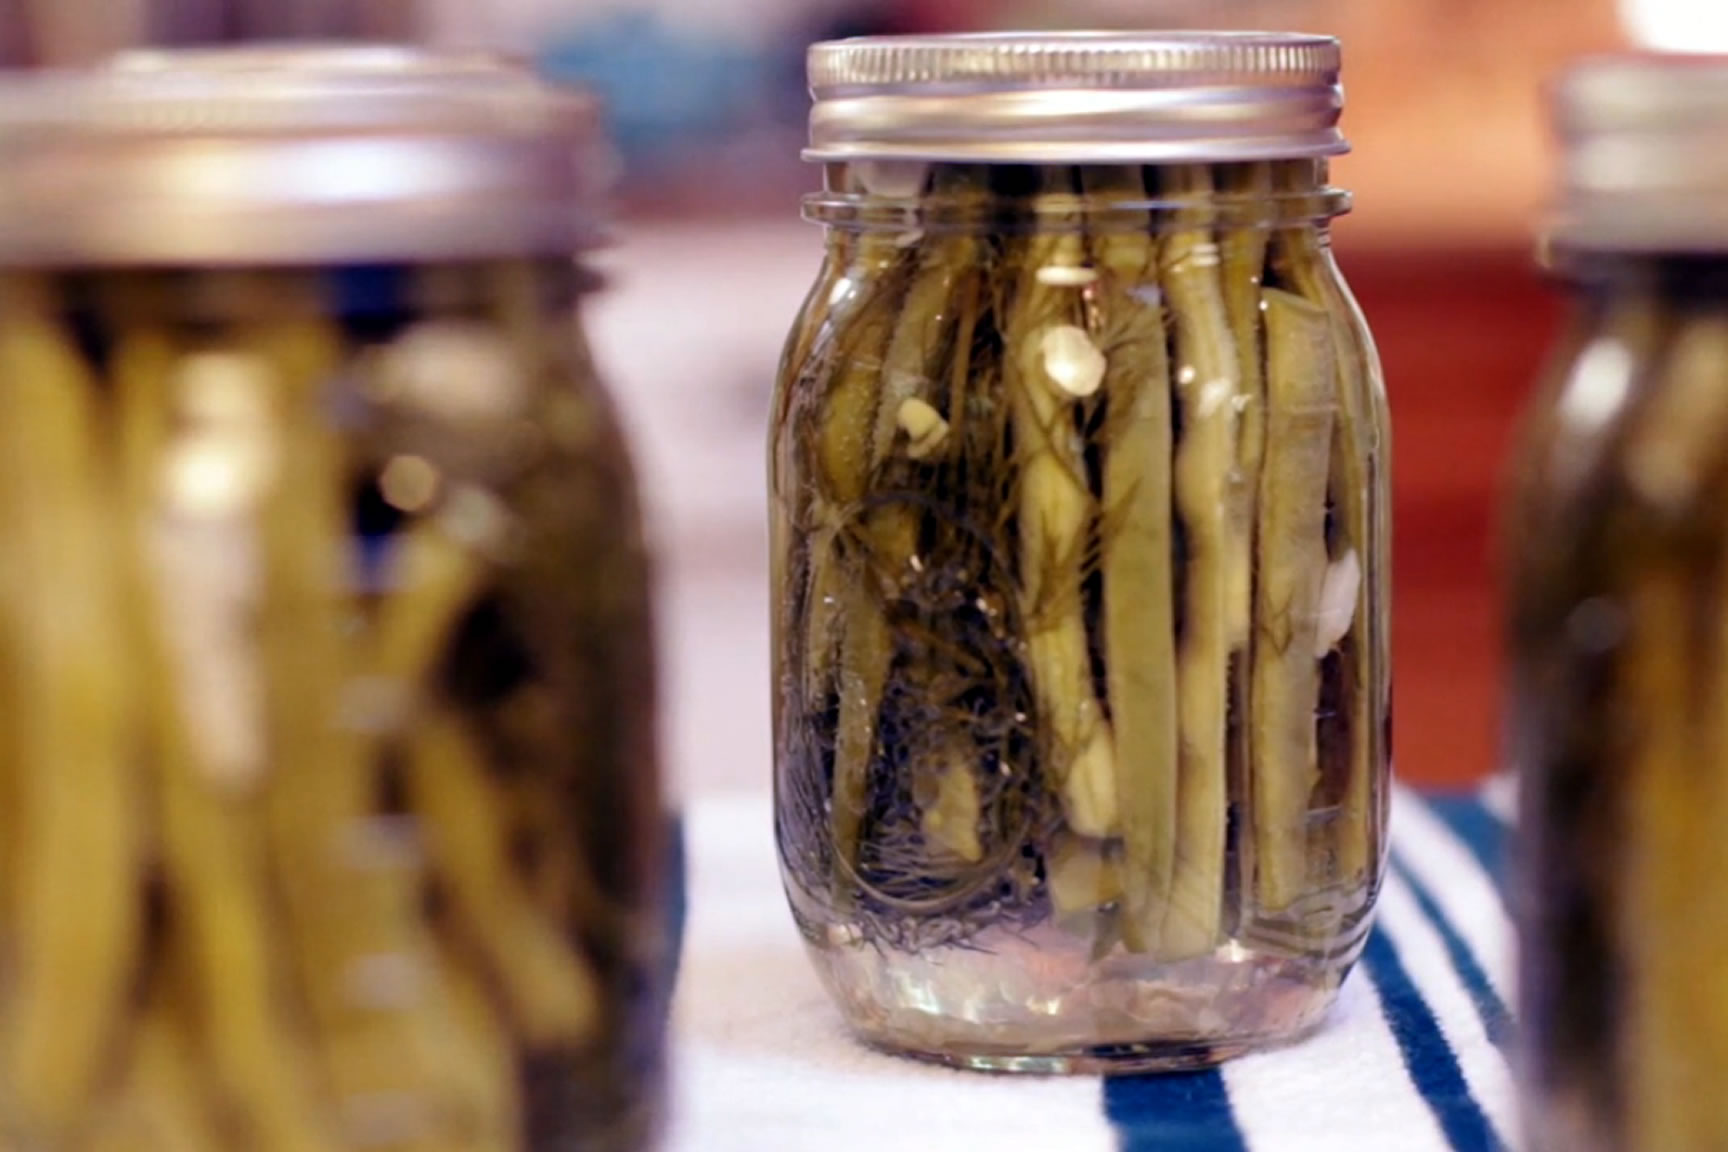 How to Make Pickles: All About the Vinegar-Brine Pickling